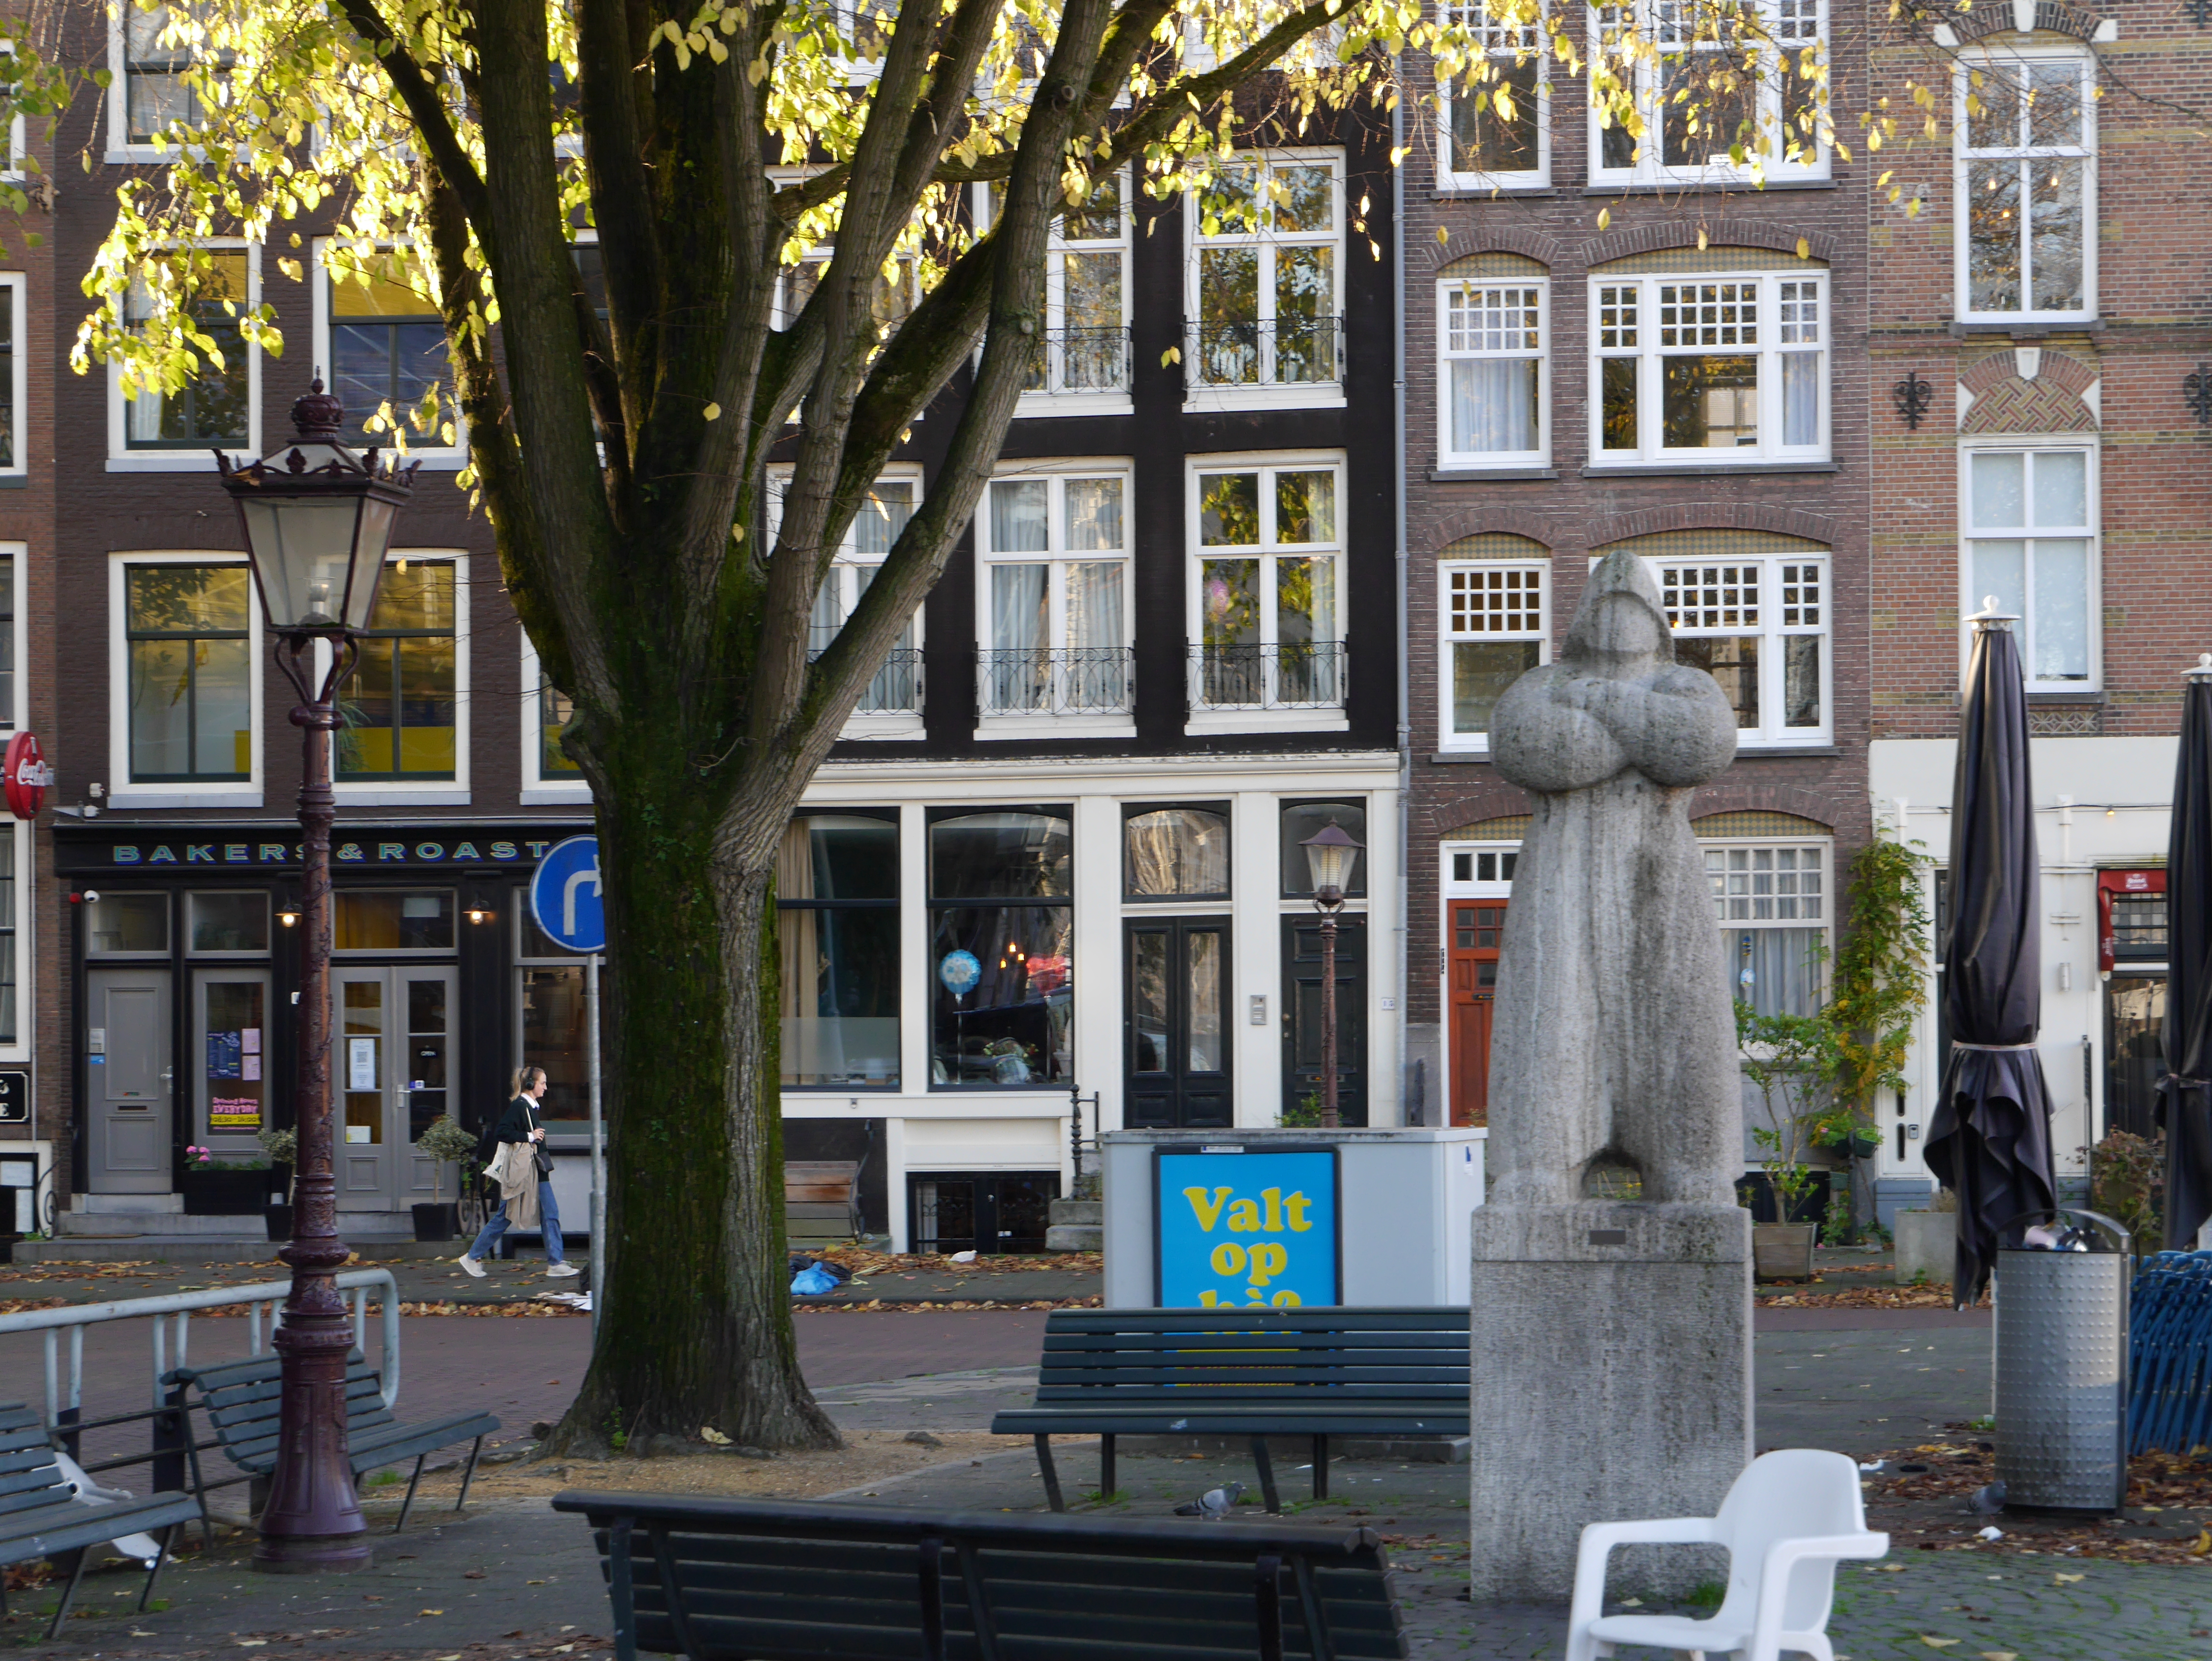 sculpture in the street with a autumn tree, in the city Amsterdam, Netherlands., sculpture in the street with a autumn tree, in the city Amsterdam, Netherlands.